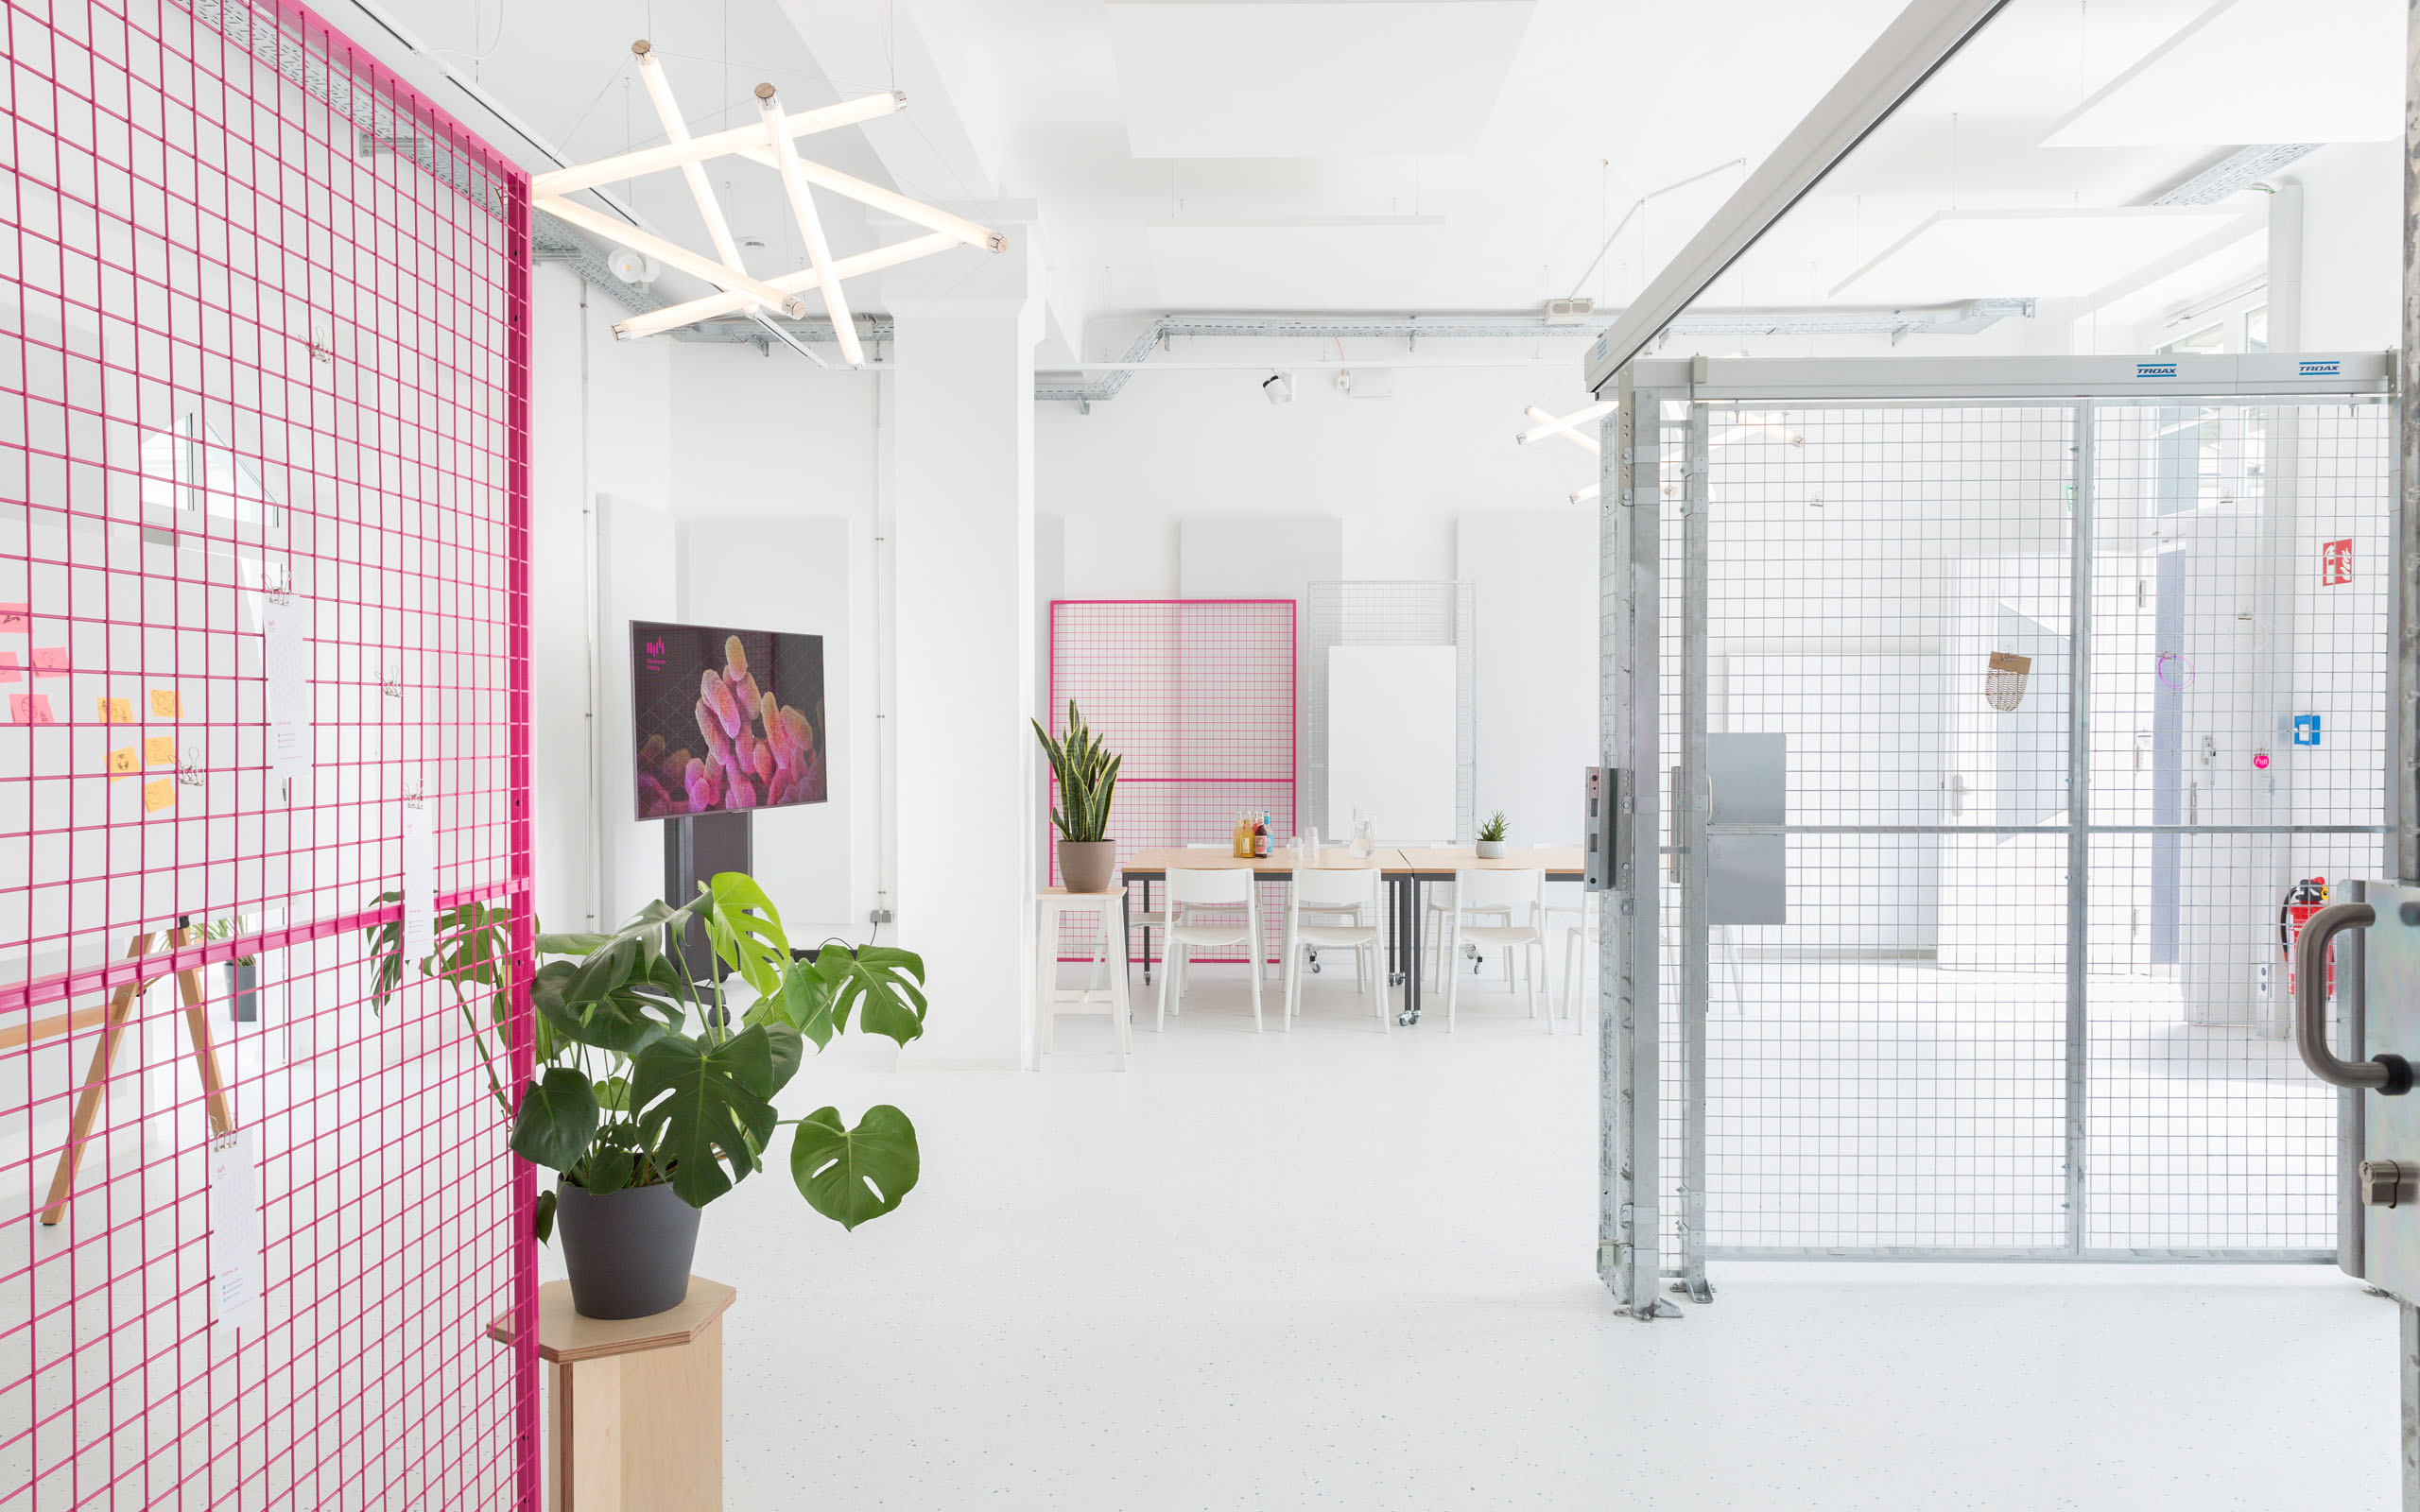 The interior of a lab working space with poppy colored grids in pink.